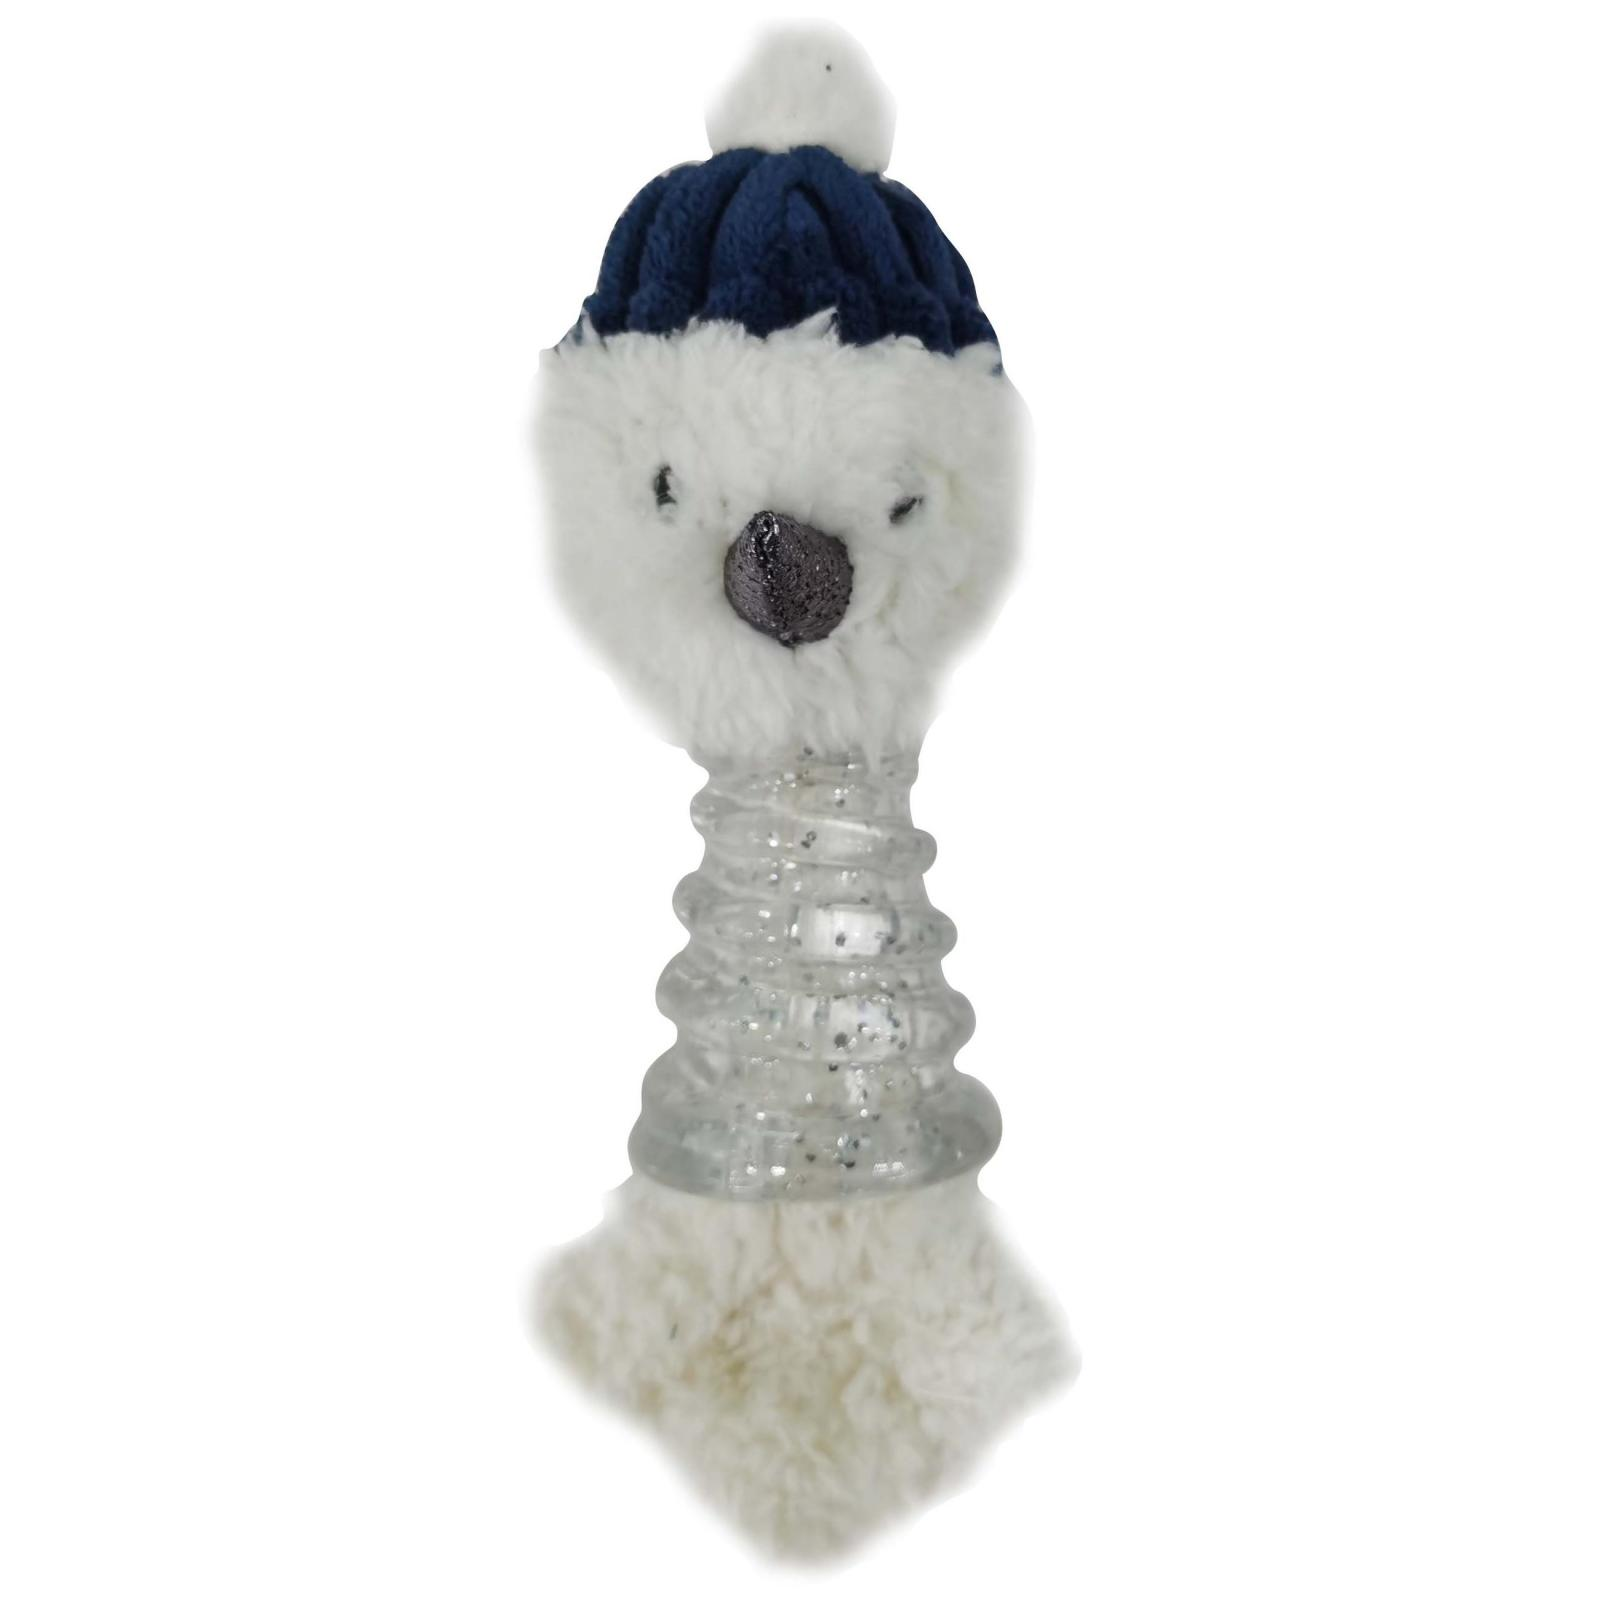 Bark-a-boo Bark A Boo Frozen in Time Mongoose Snowman